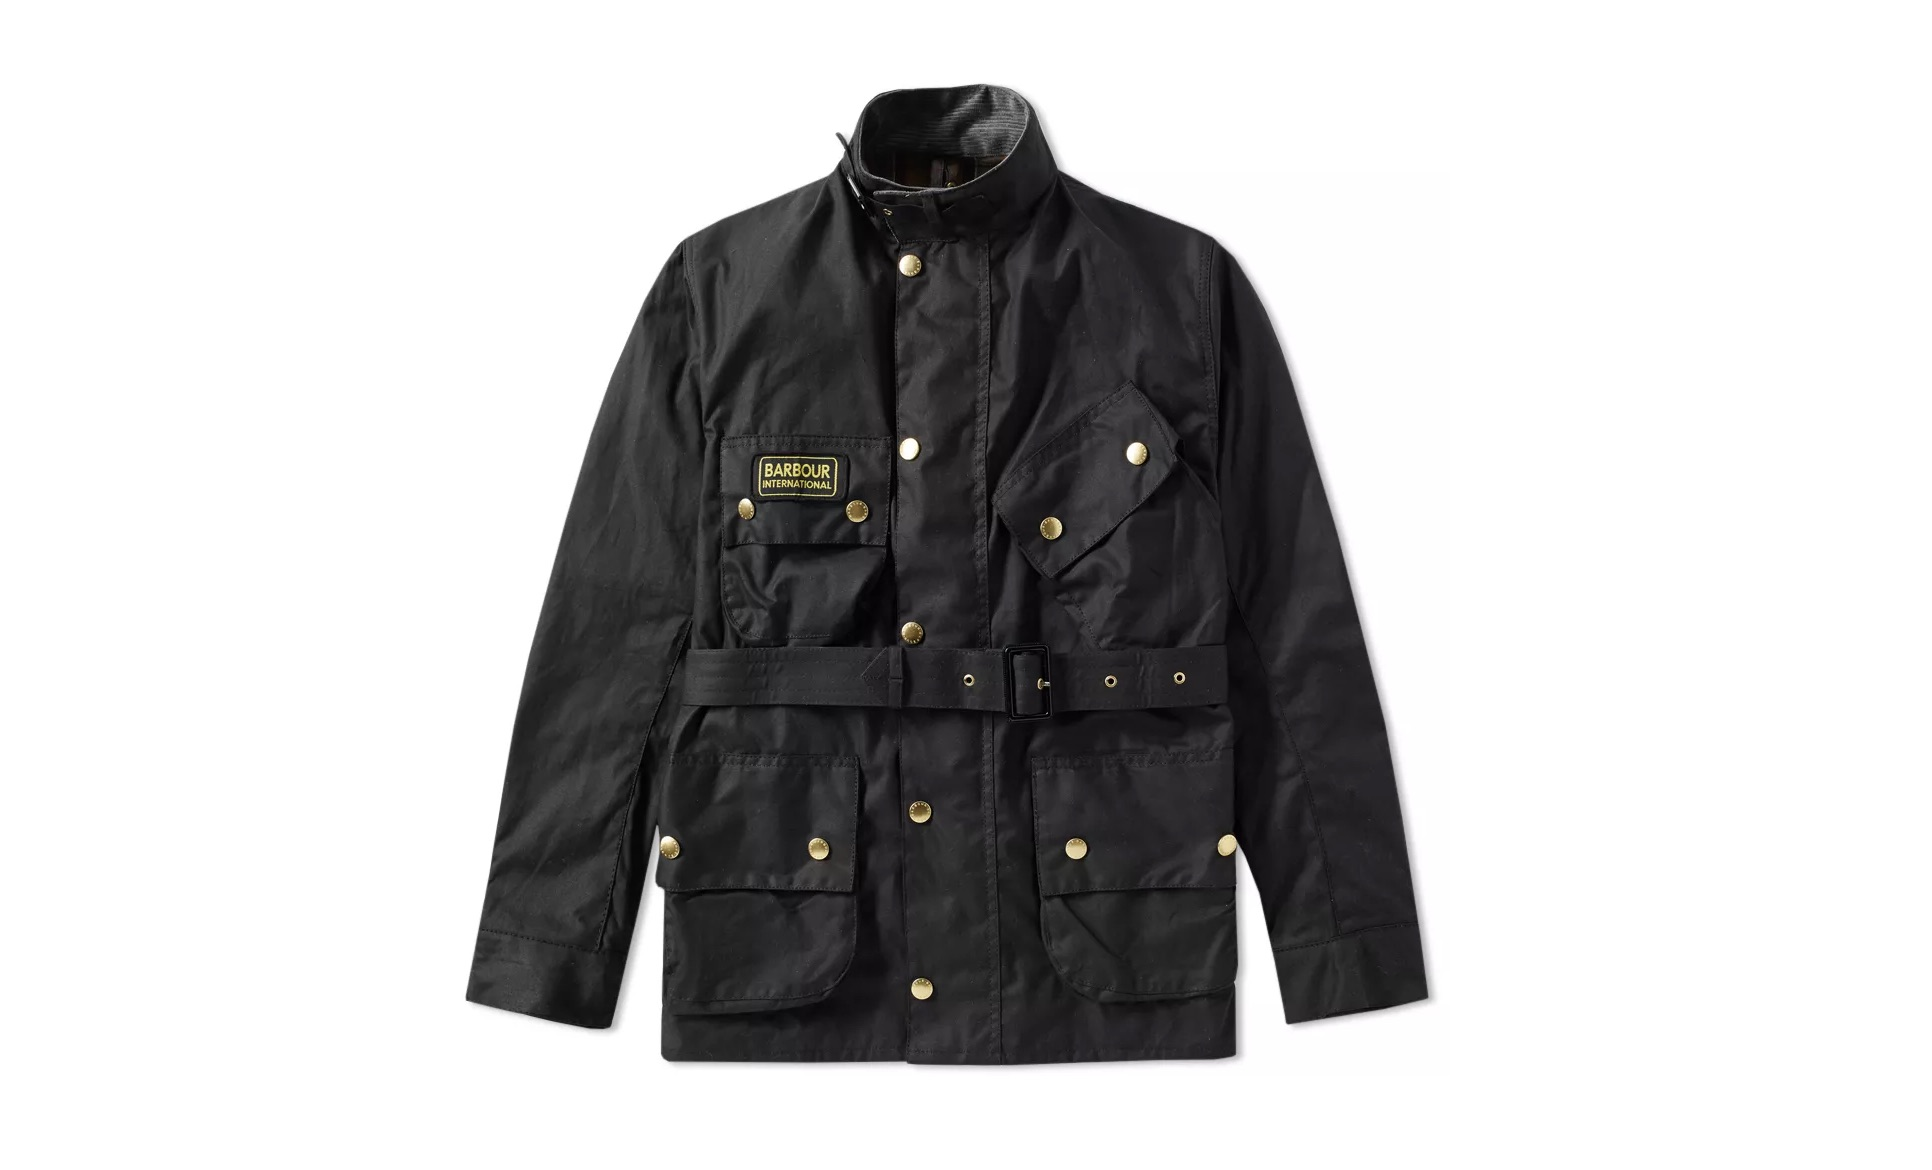 barbour international mythique veste moto